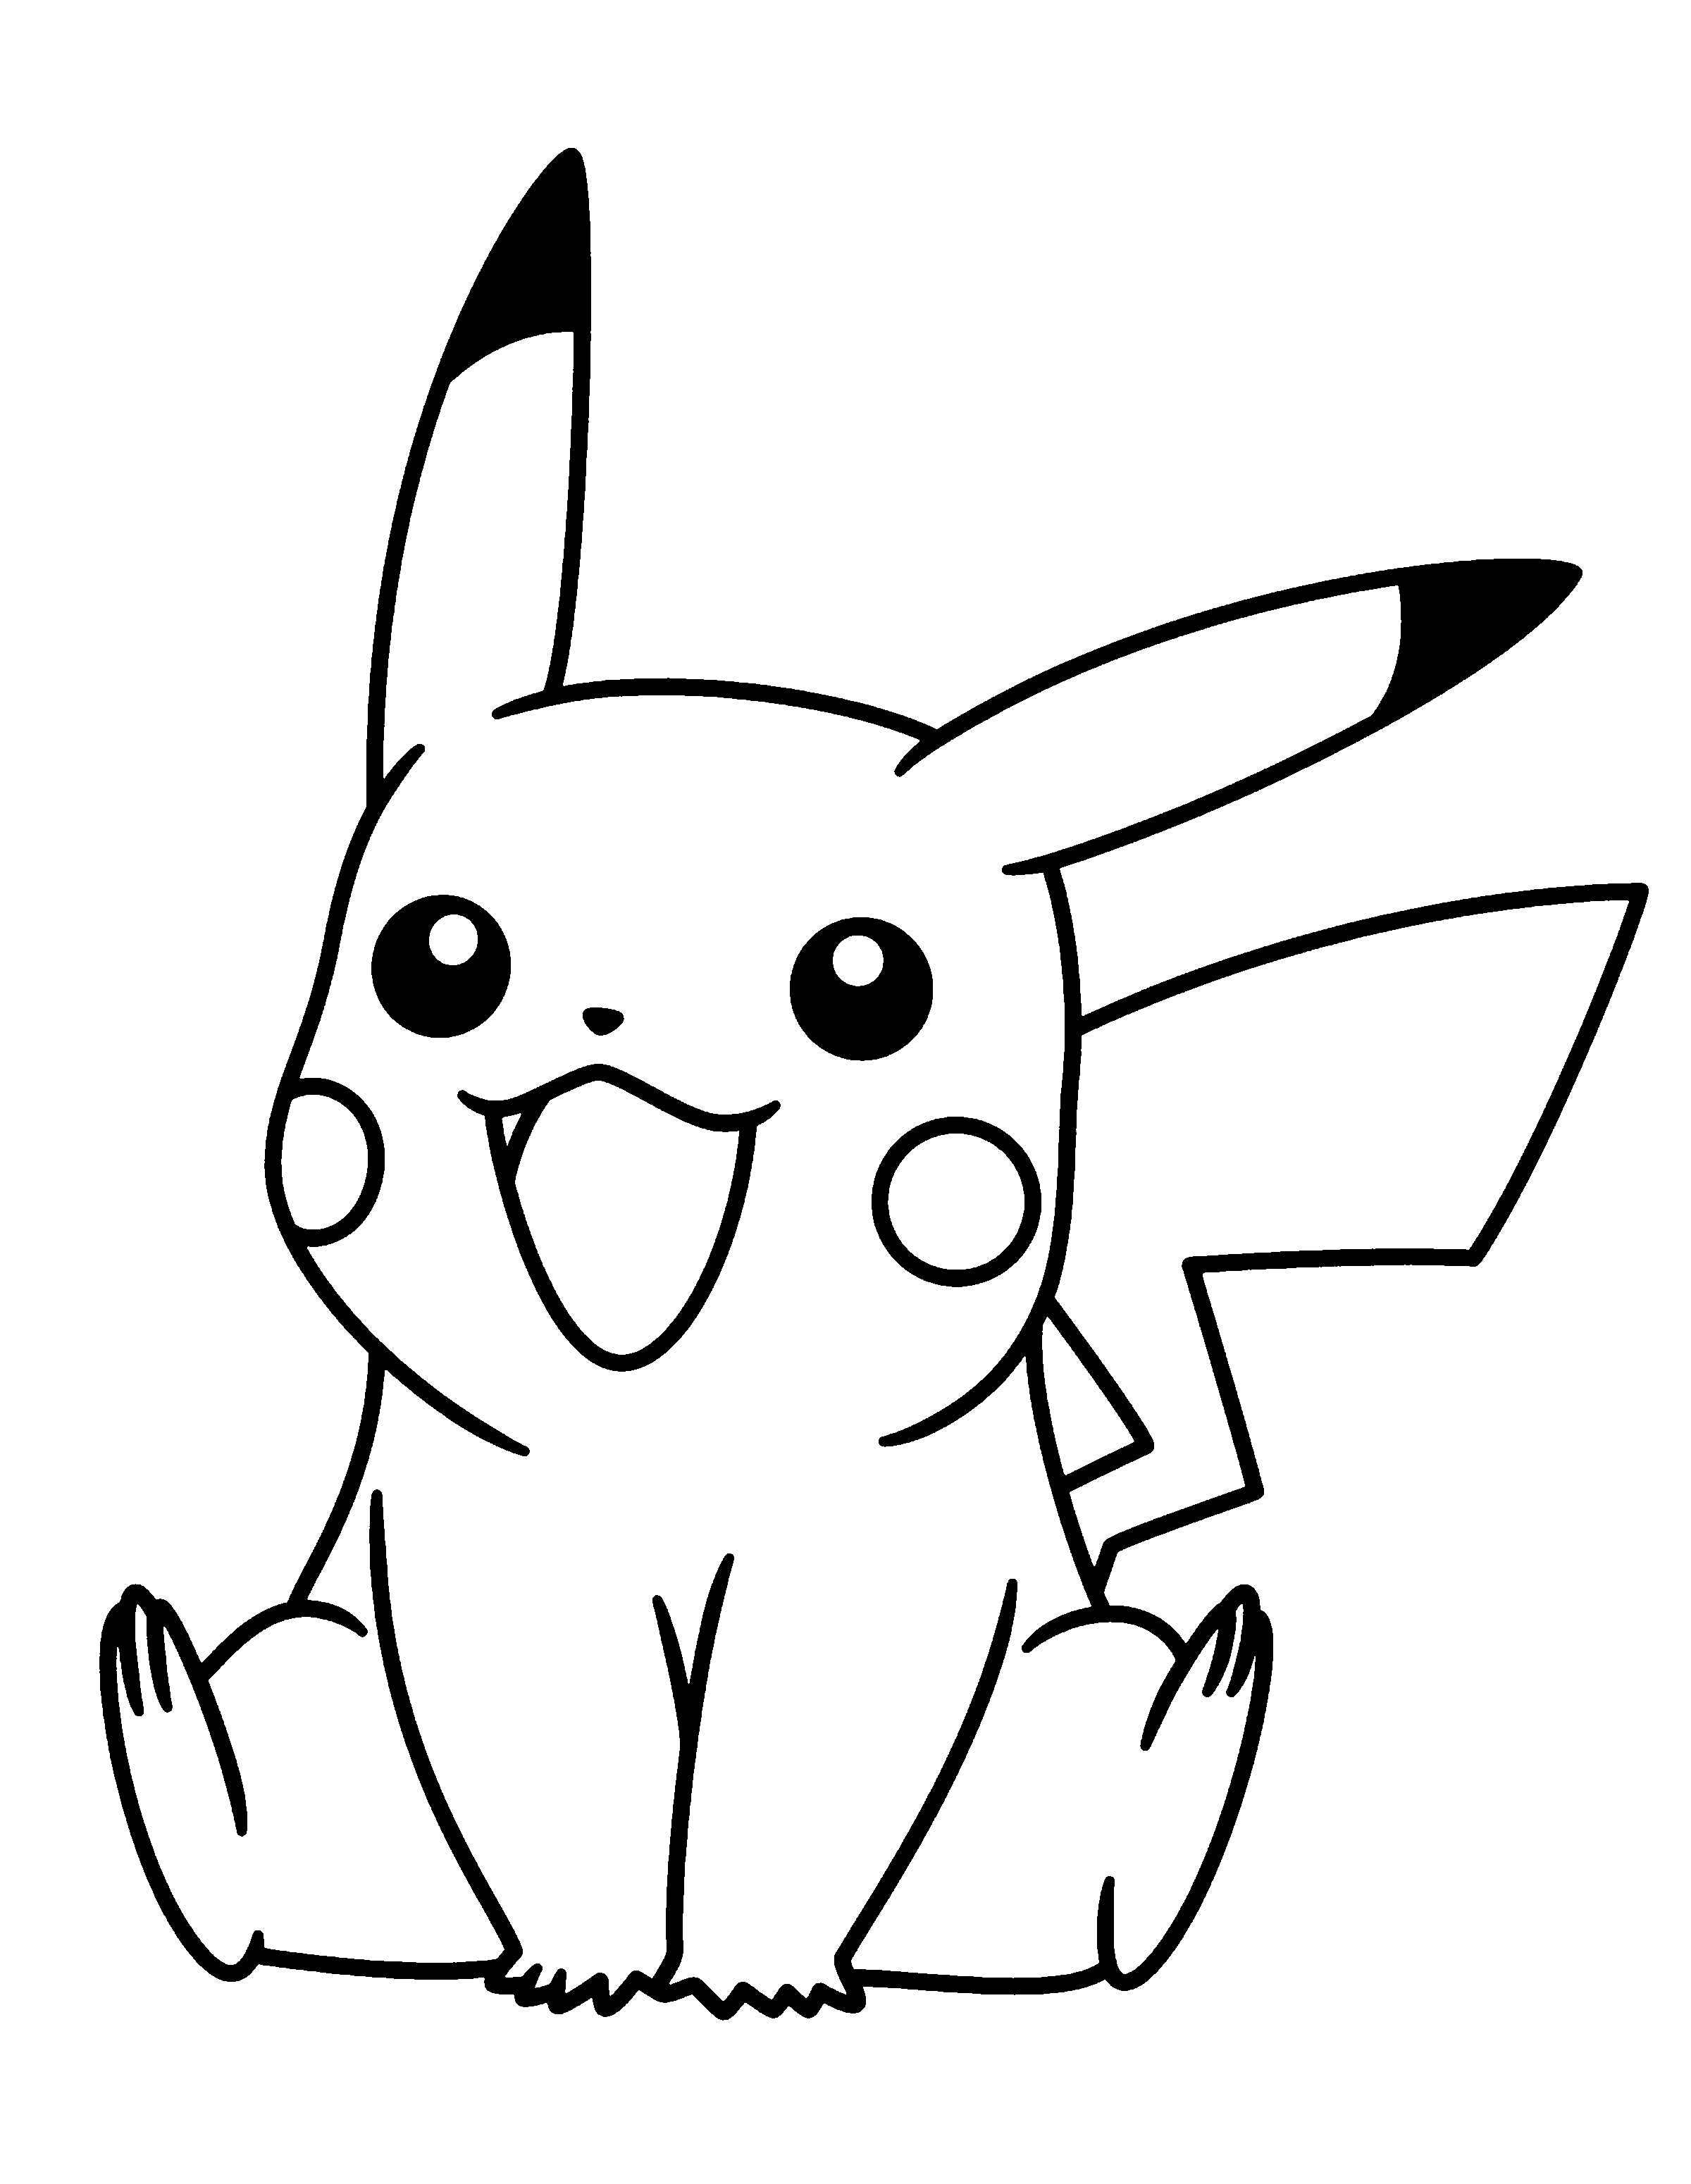 2400x3100 Download Or Print The Free Little Pikachu Coloring Page And Find